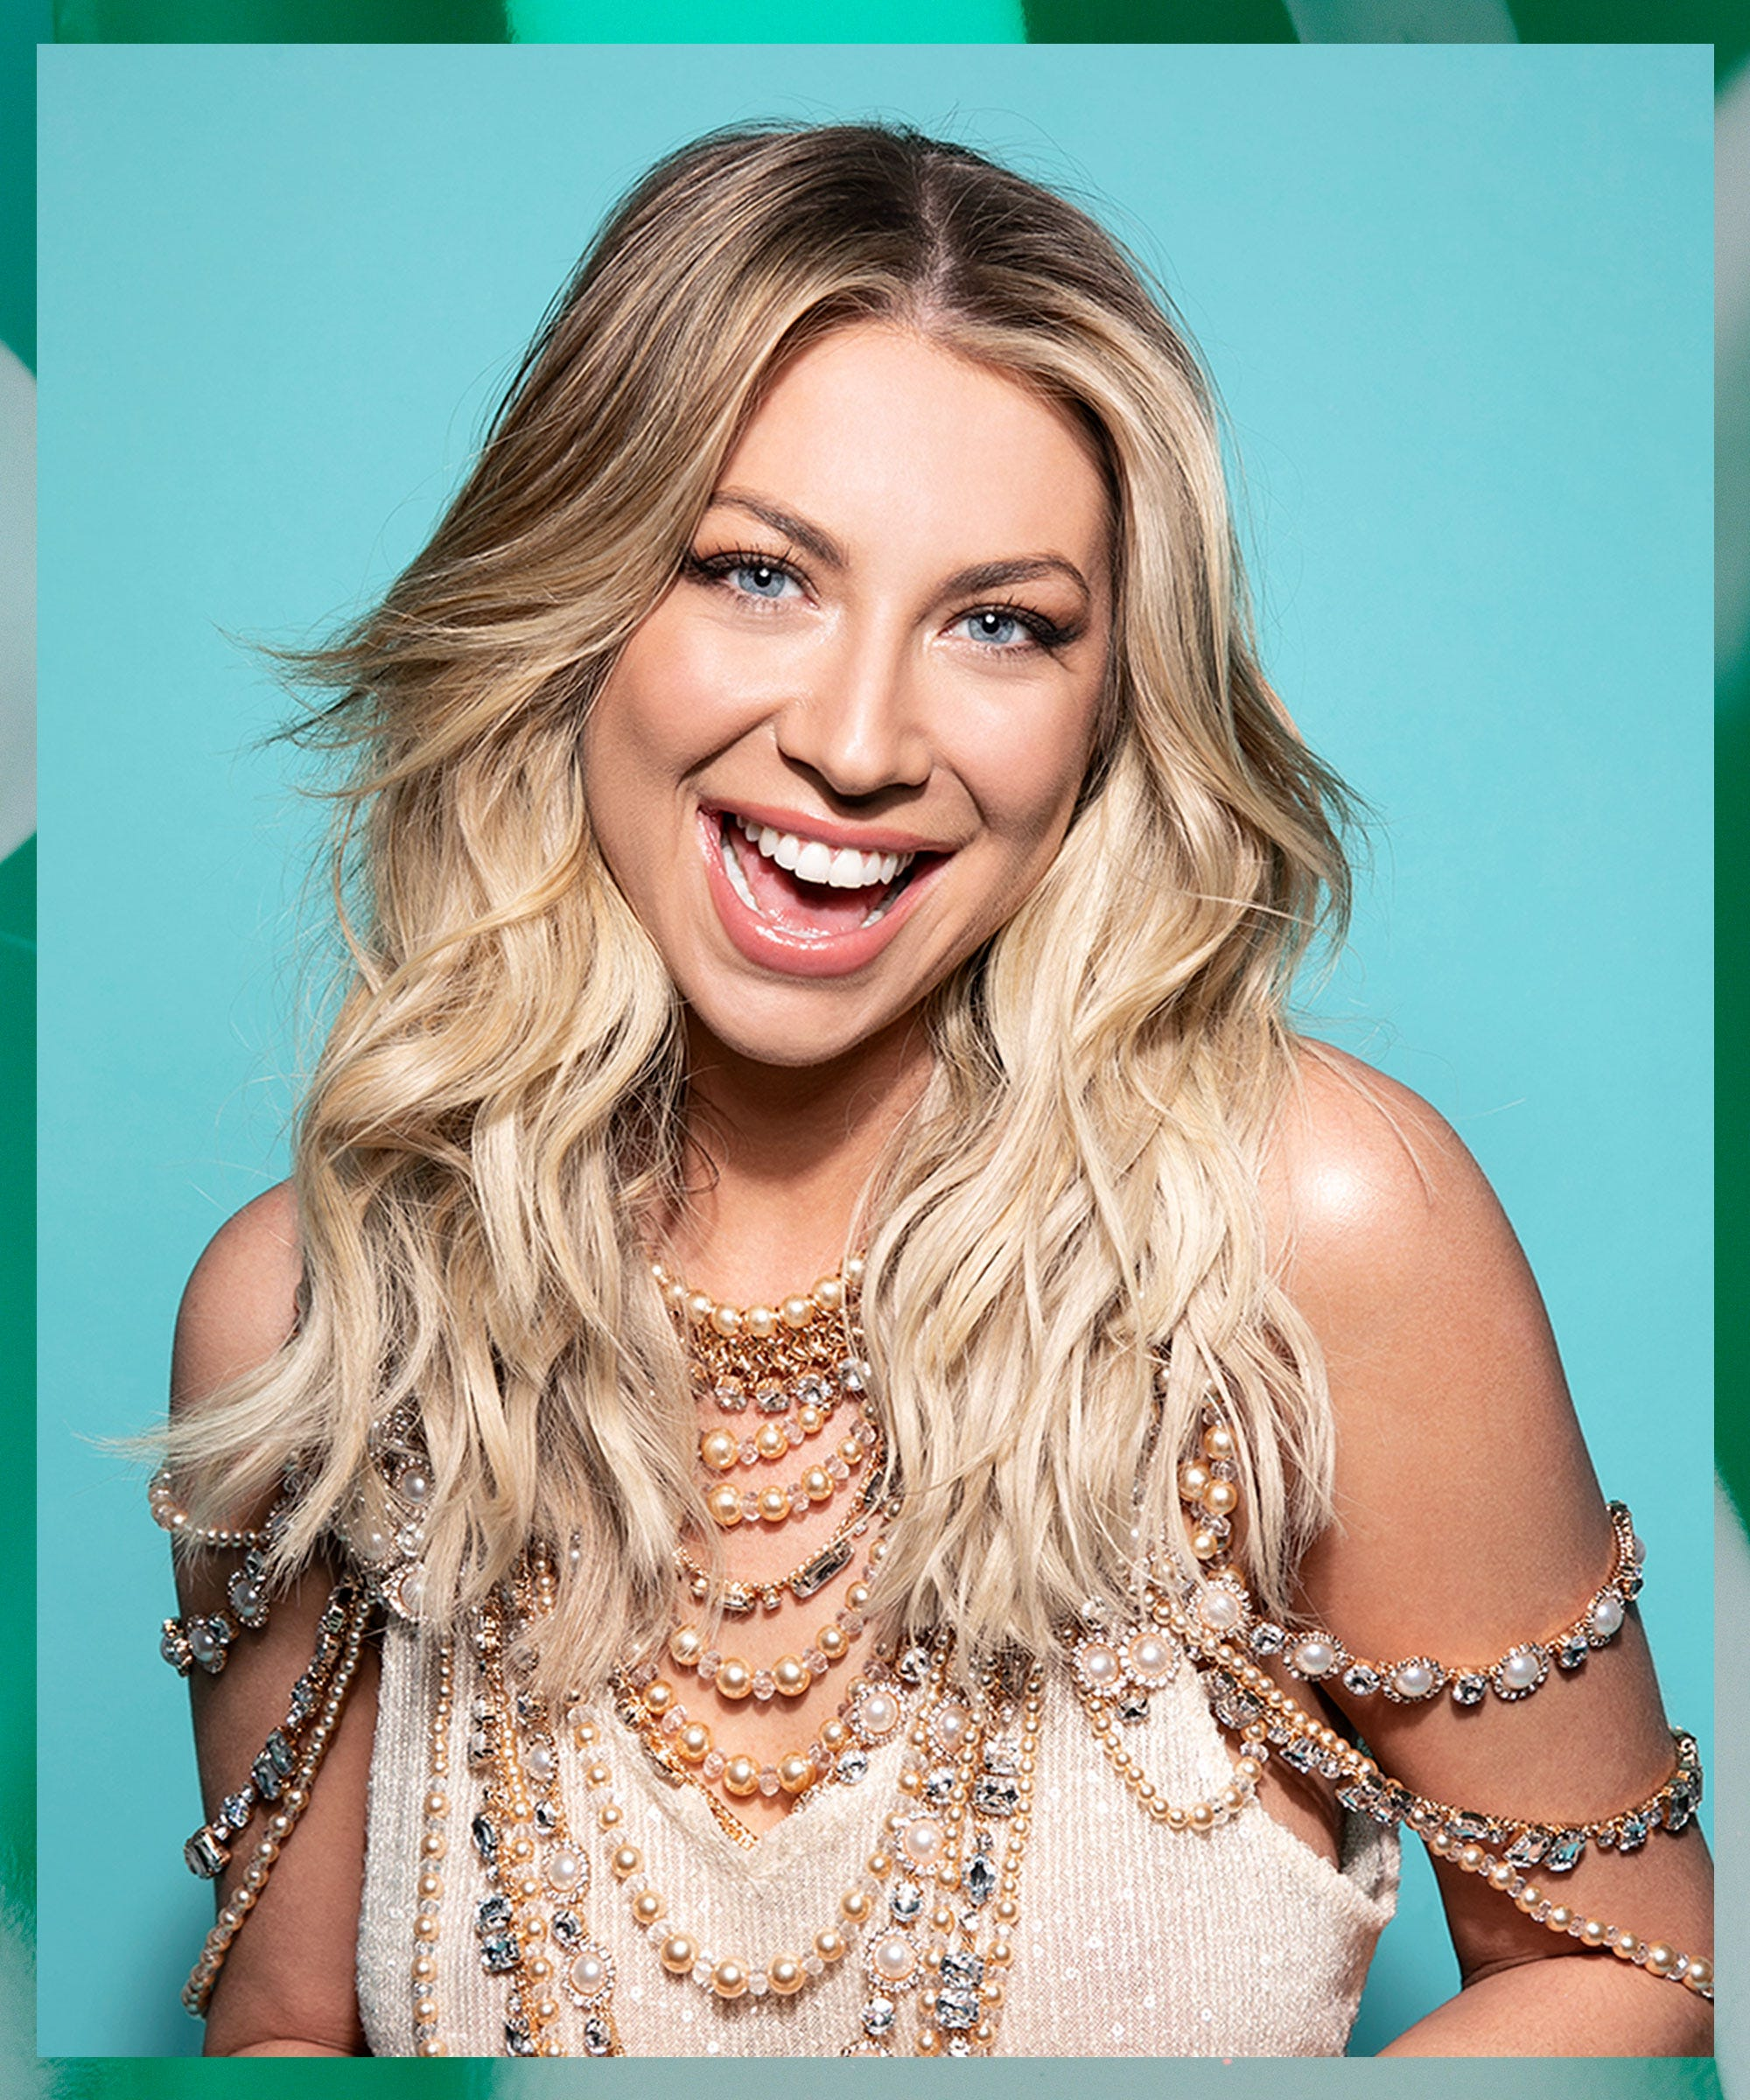 VPR's Stassi Schroeder Invites You To Join The Cult Of Next-Level Basic With Her First Book